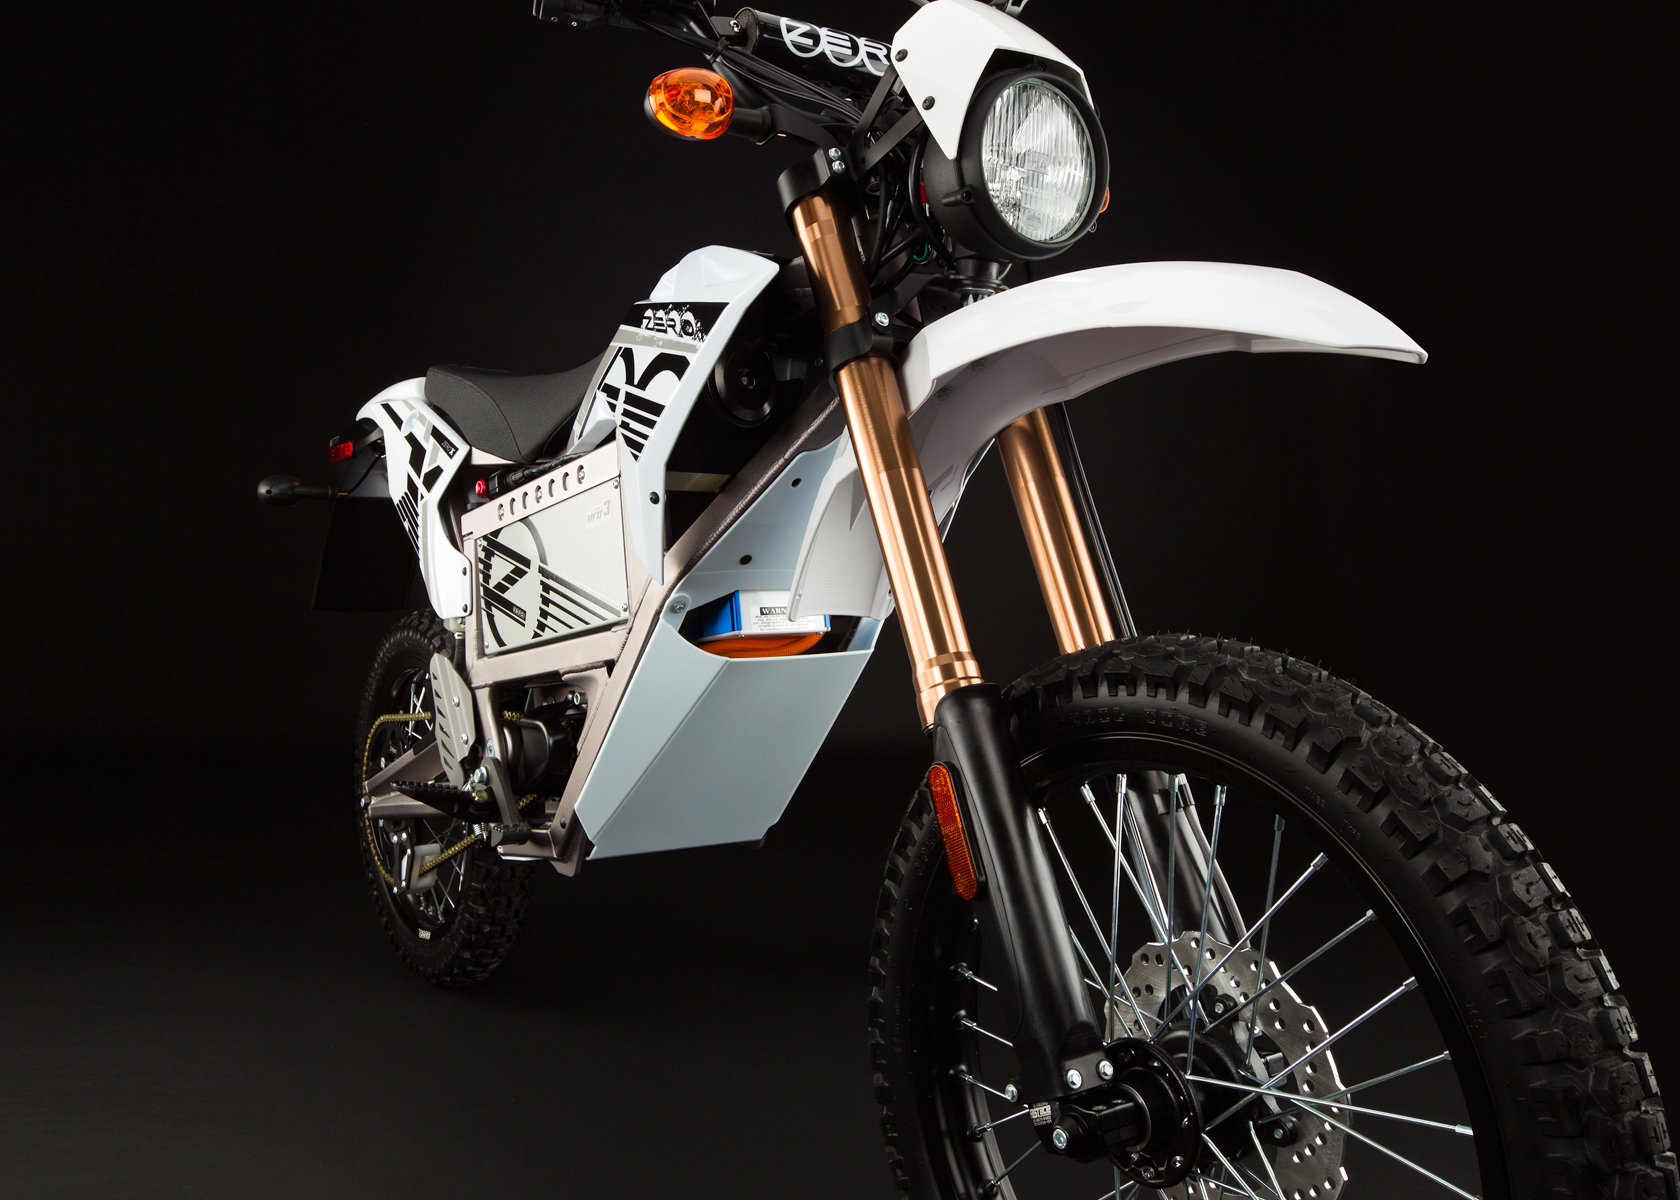 '.2012 Zero X Electric Motorcycle: Front Fork.'